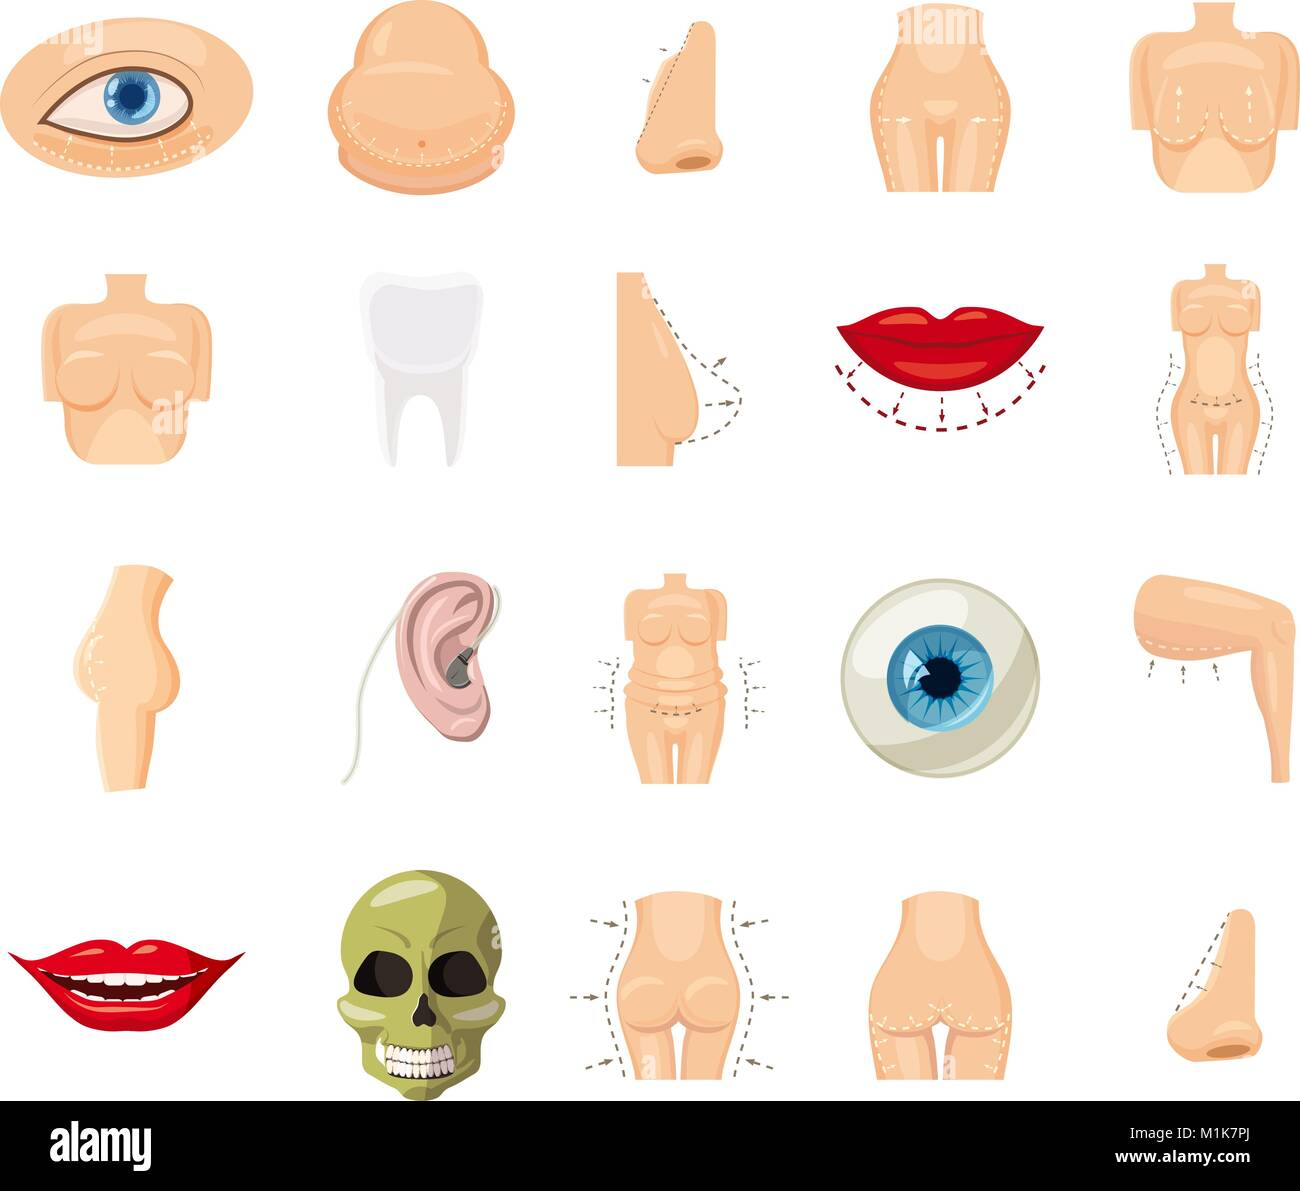 human body icon set cartoon style stock vector image art alamy alamy